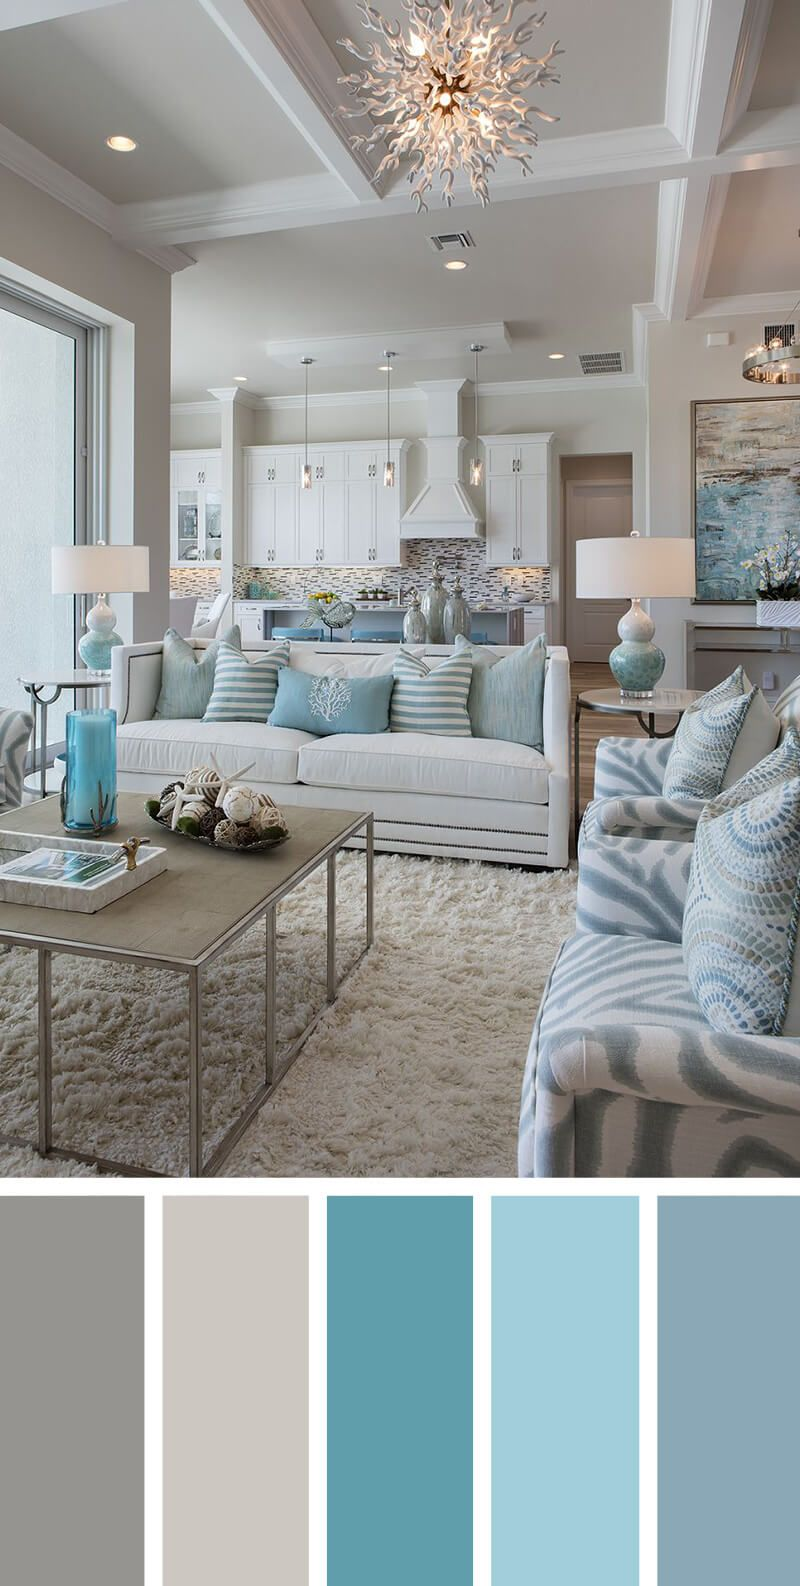 Interior Home Color Combinations | A Calming Sea Of Blues Decor Ideas Living Room Decor Home Decor